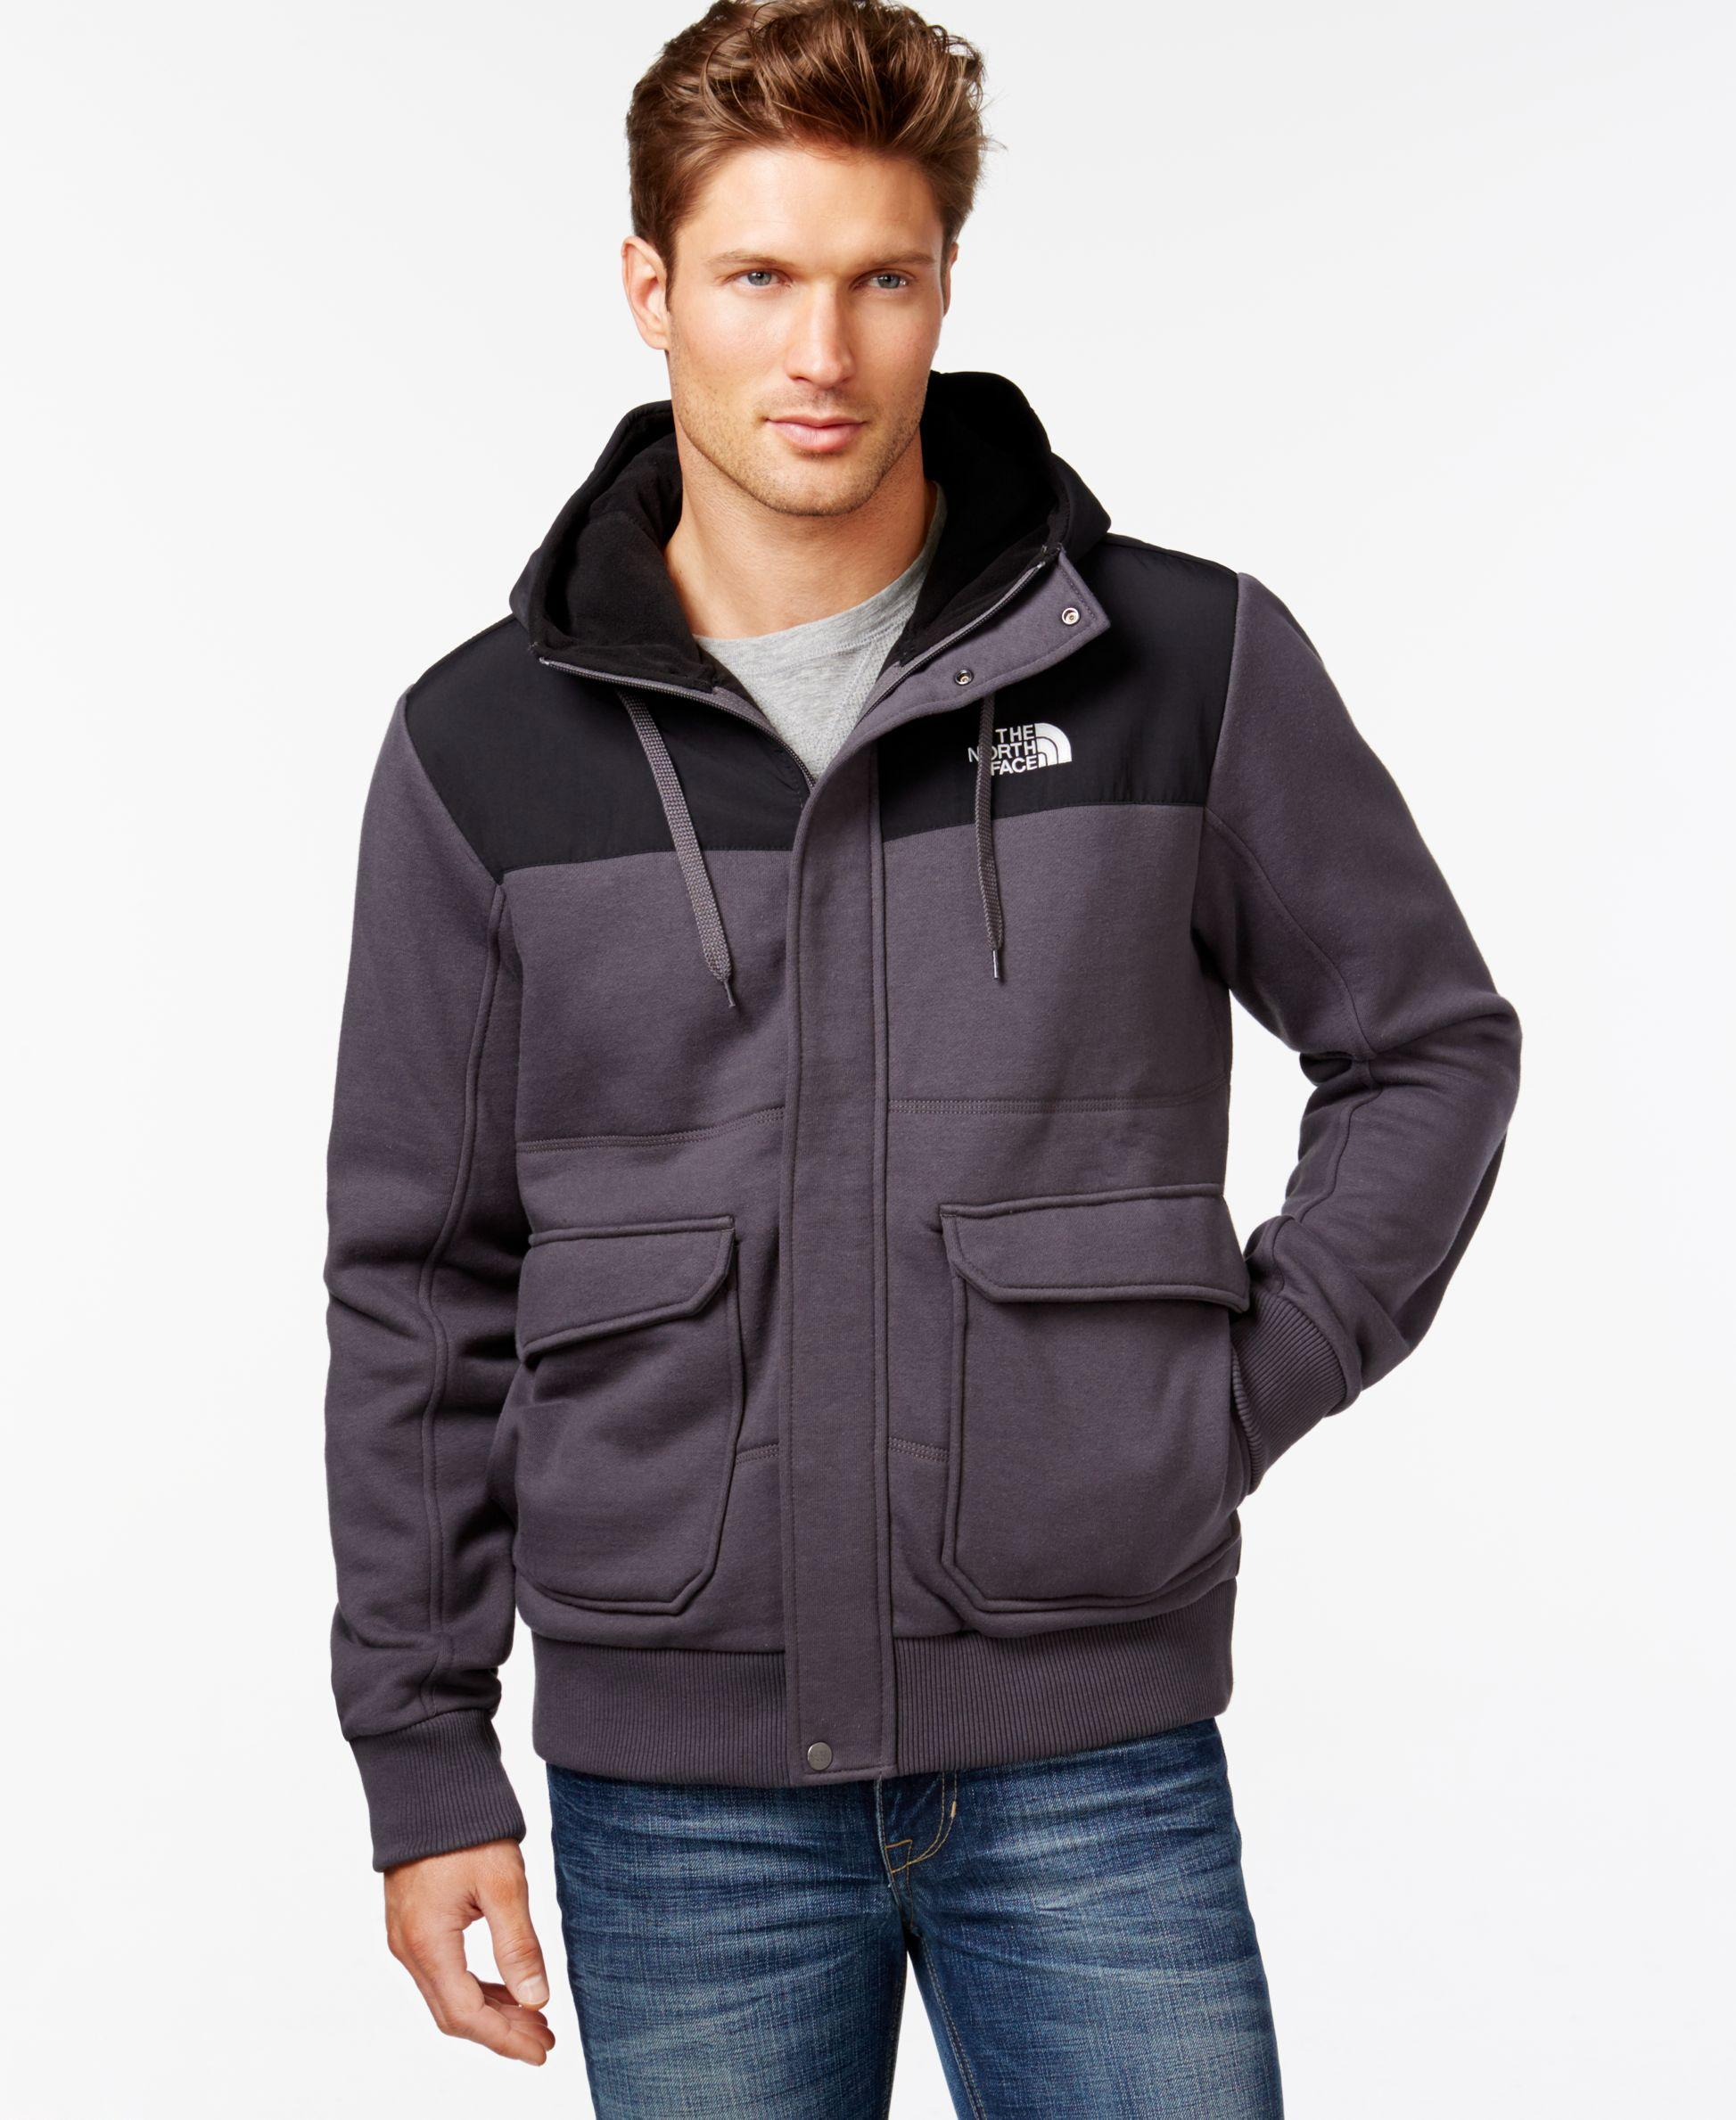 Lyst The North Face Rivington Full Zip Jacket In Gray